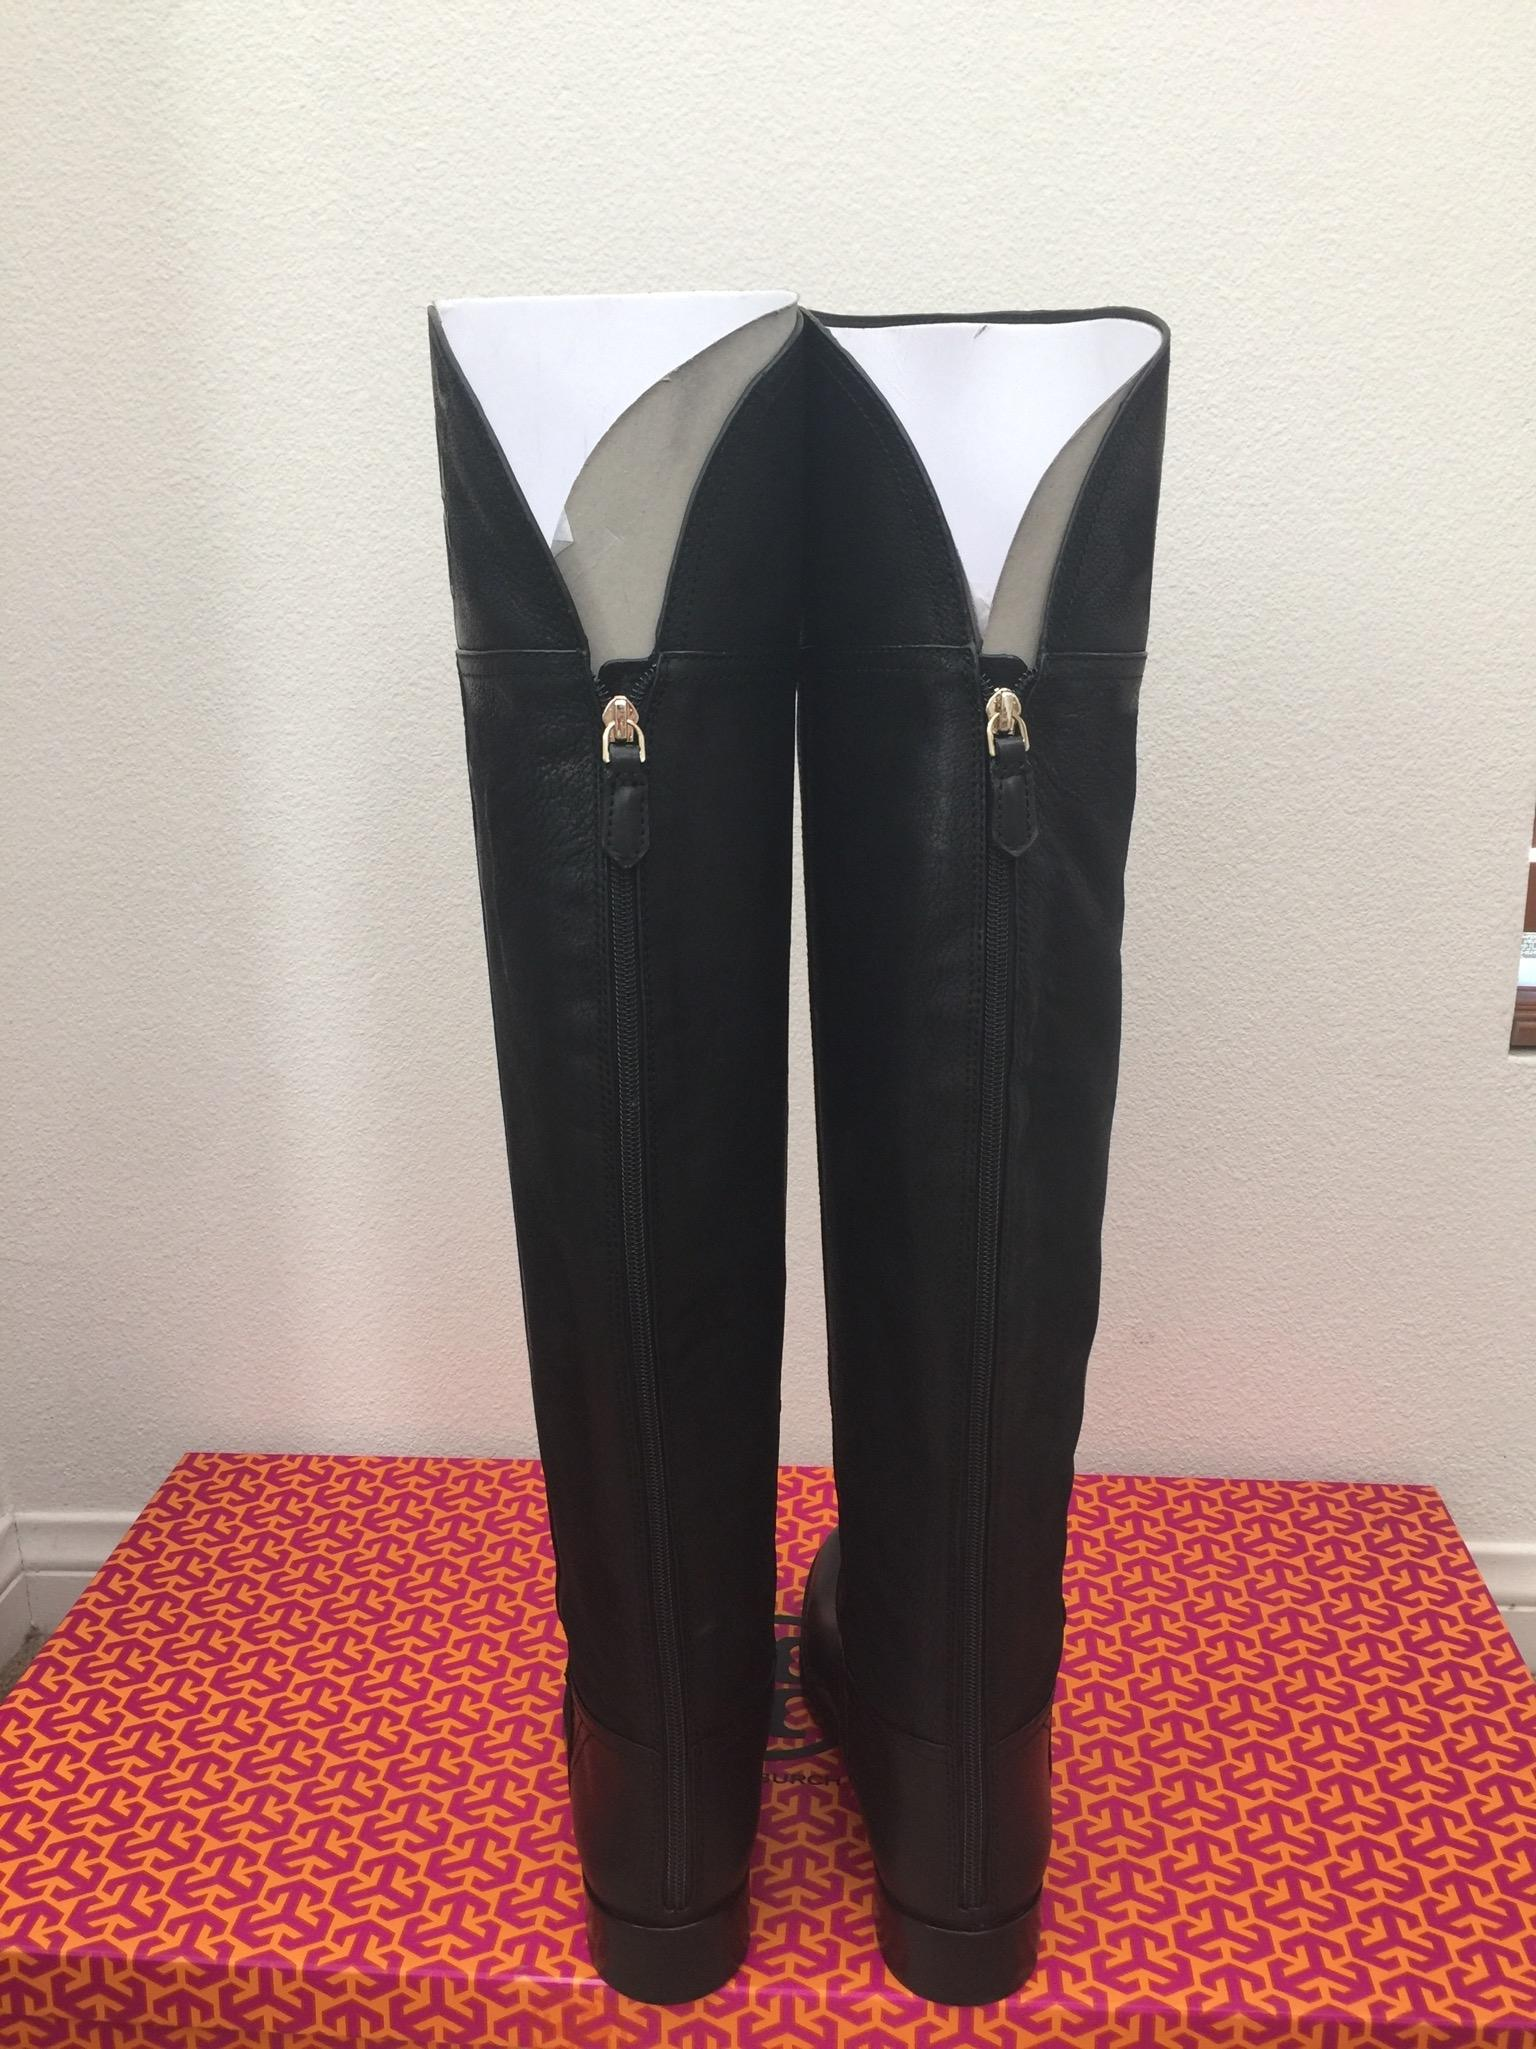 5a29cfafc958 ... Tory Burch Black Black Black Simone Over The Knee 35mm Vintage Buffalo  Boots Booties Size ...